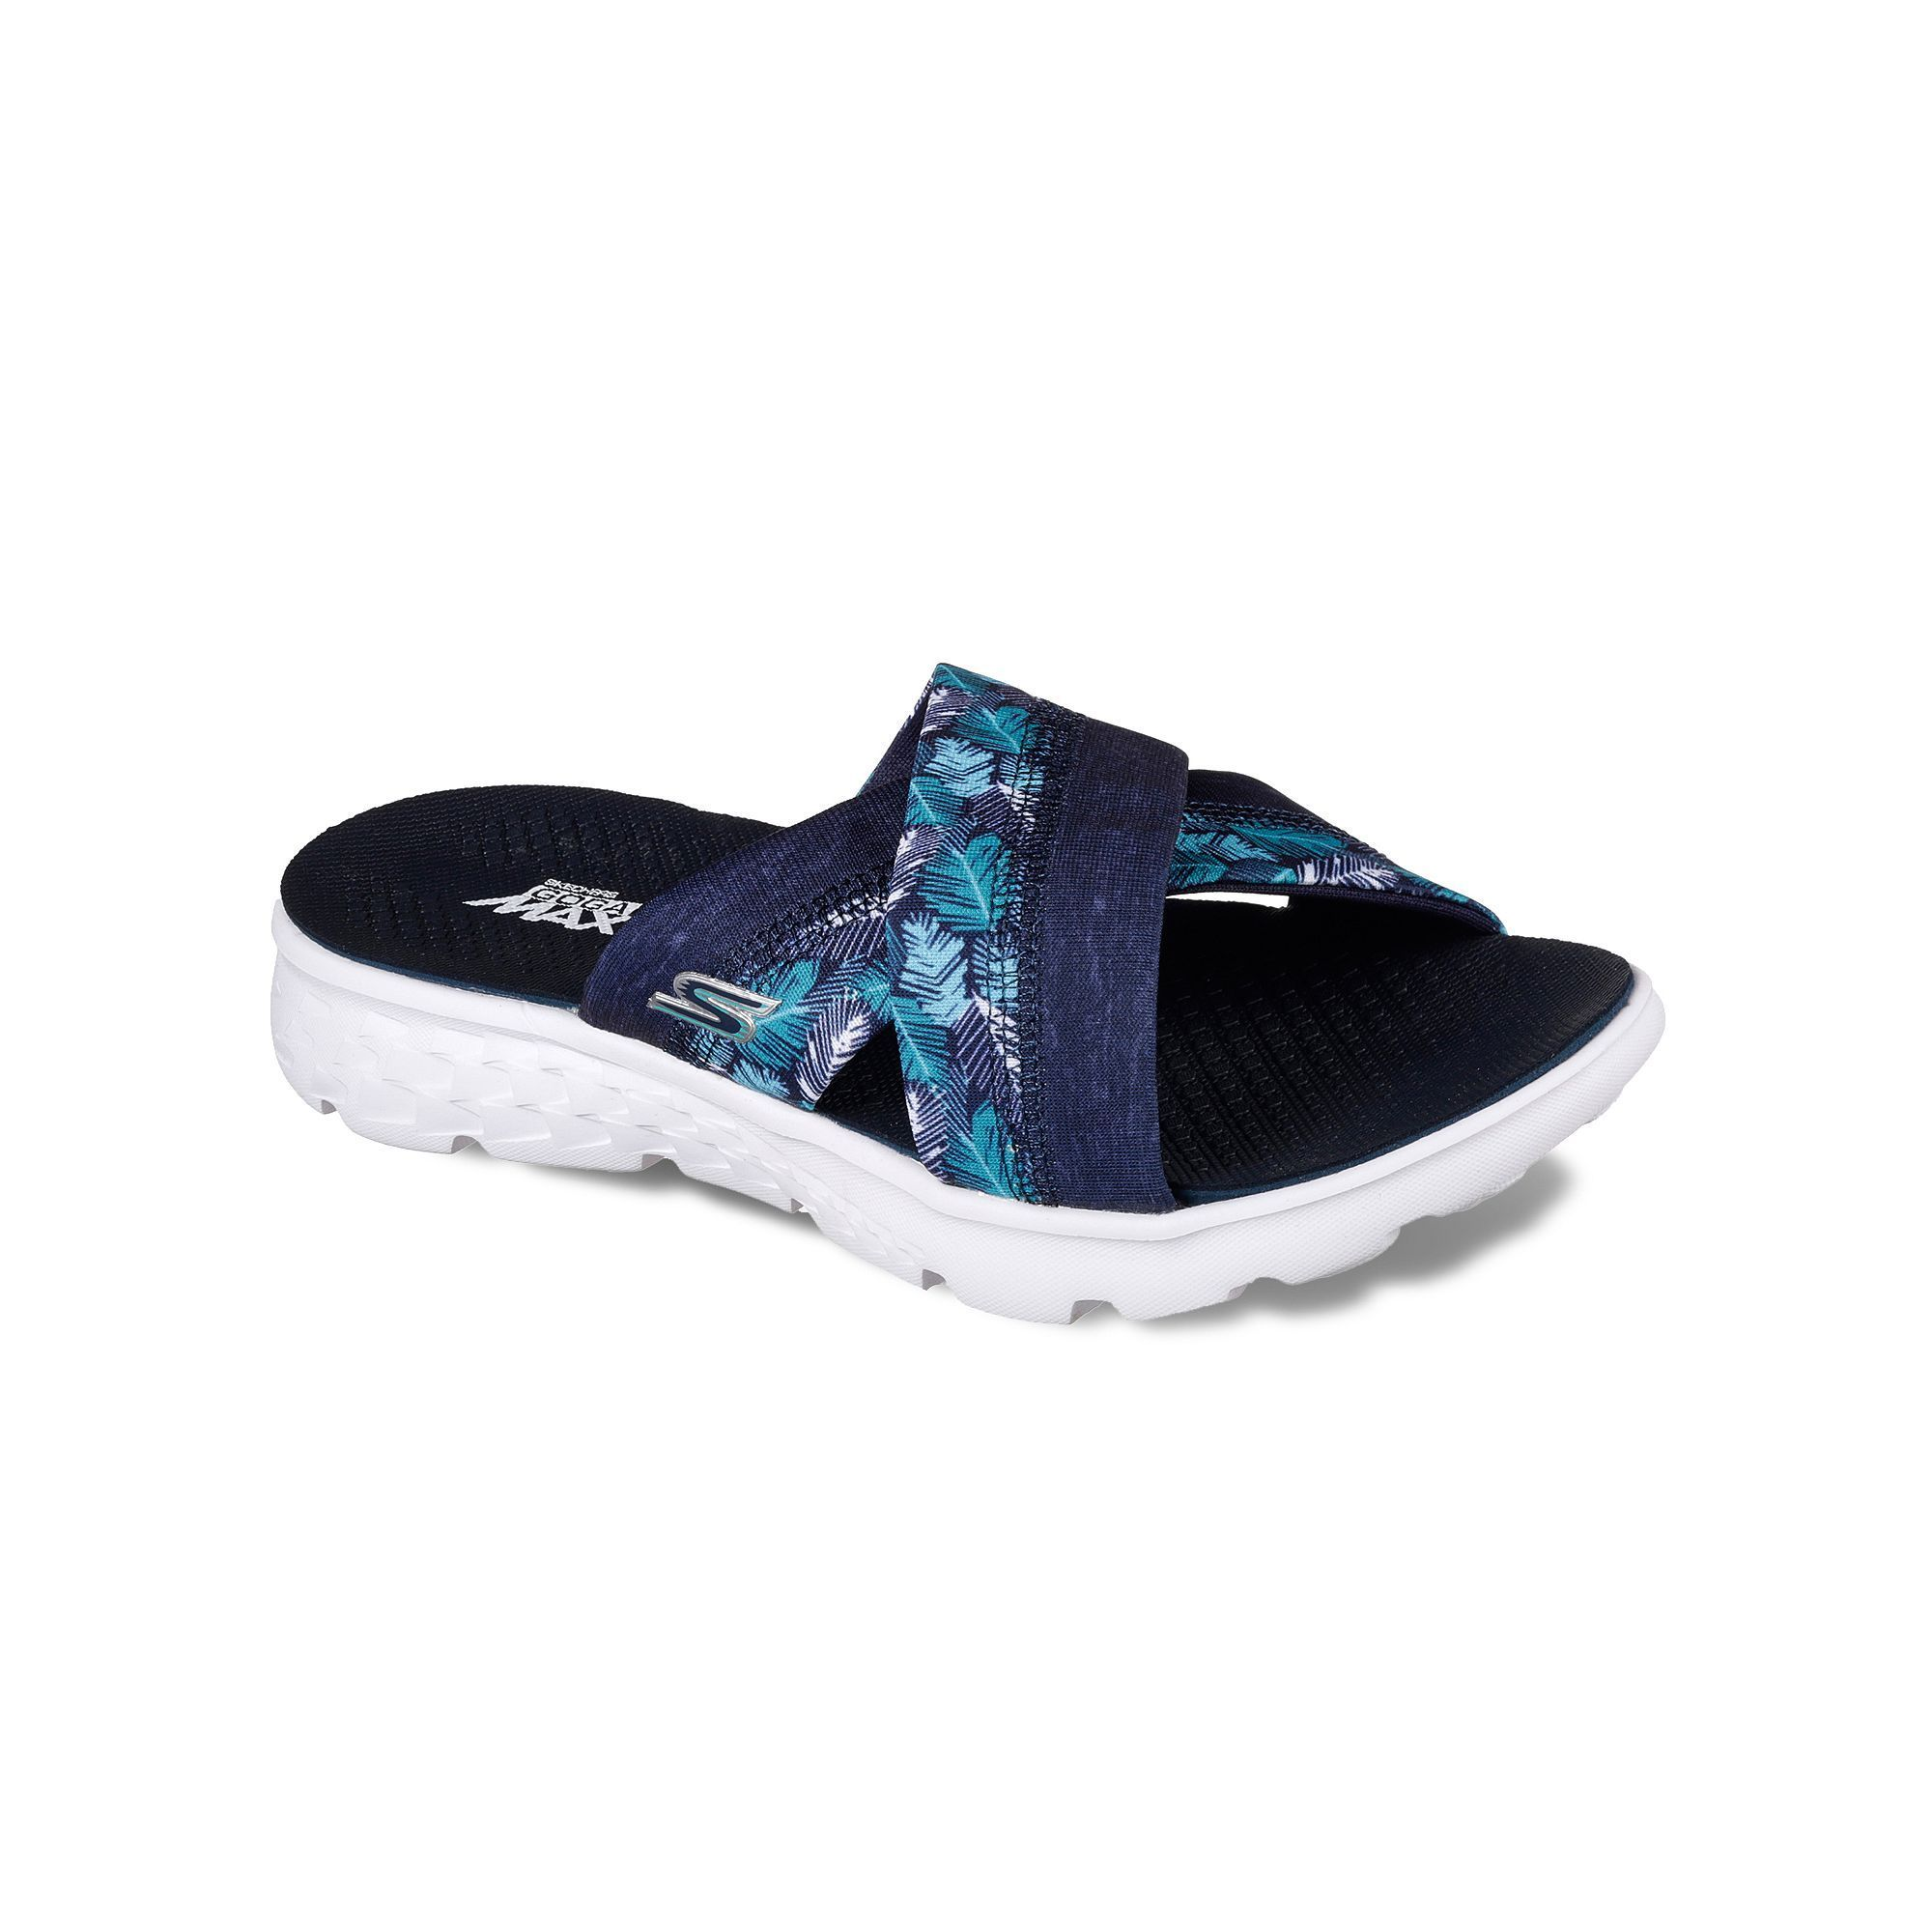 Skechers On the GO 400 Tropical Women's Sandals | Skechers